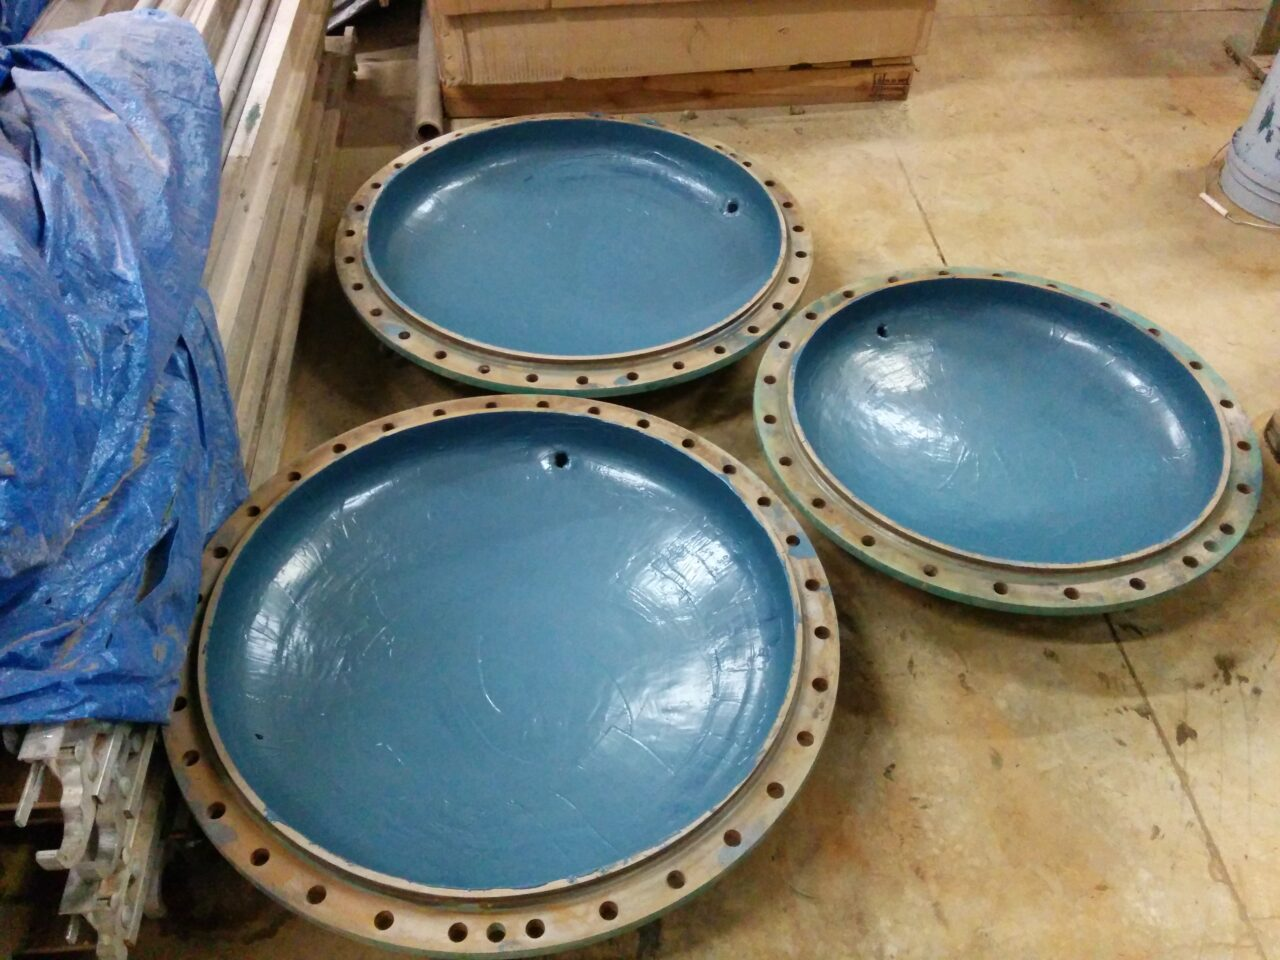 Completed application providing bi-metallic and pitting corrosion resistance